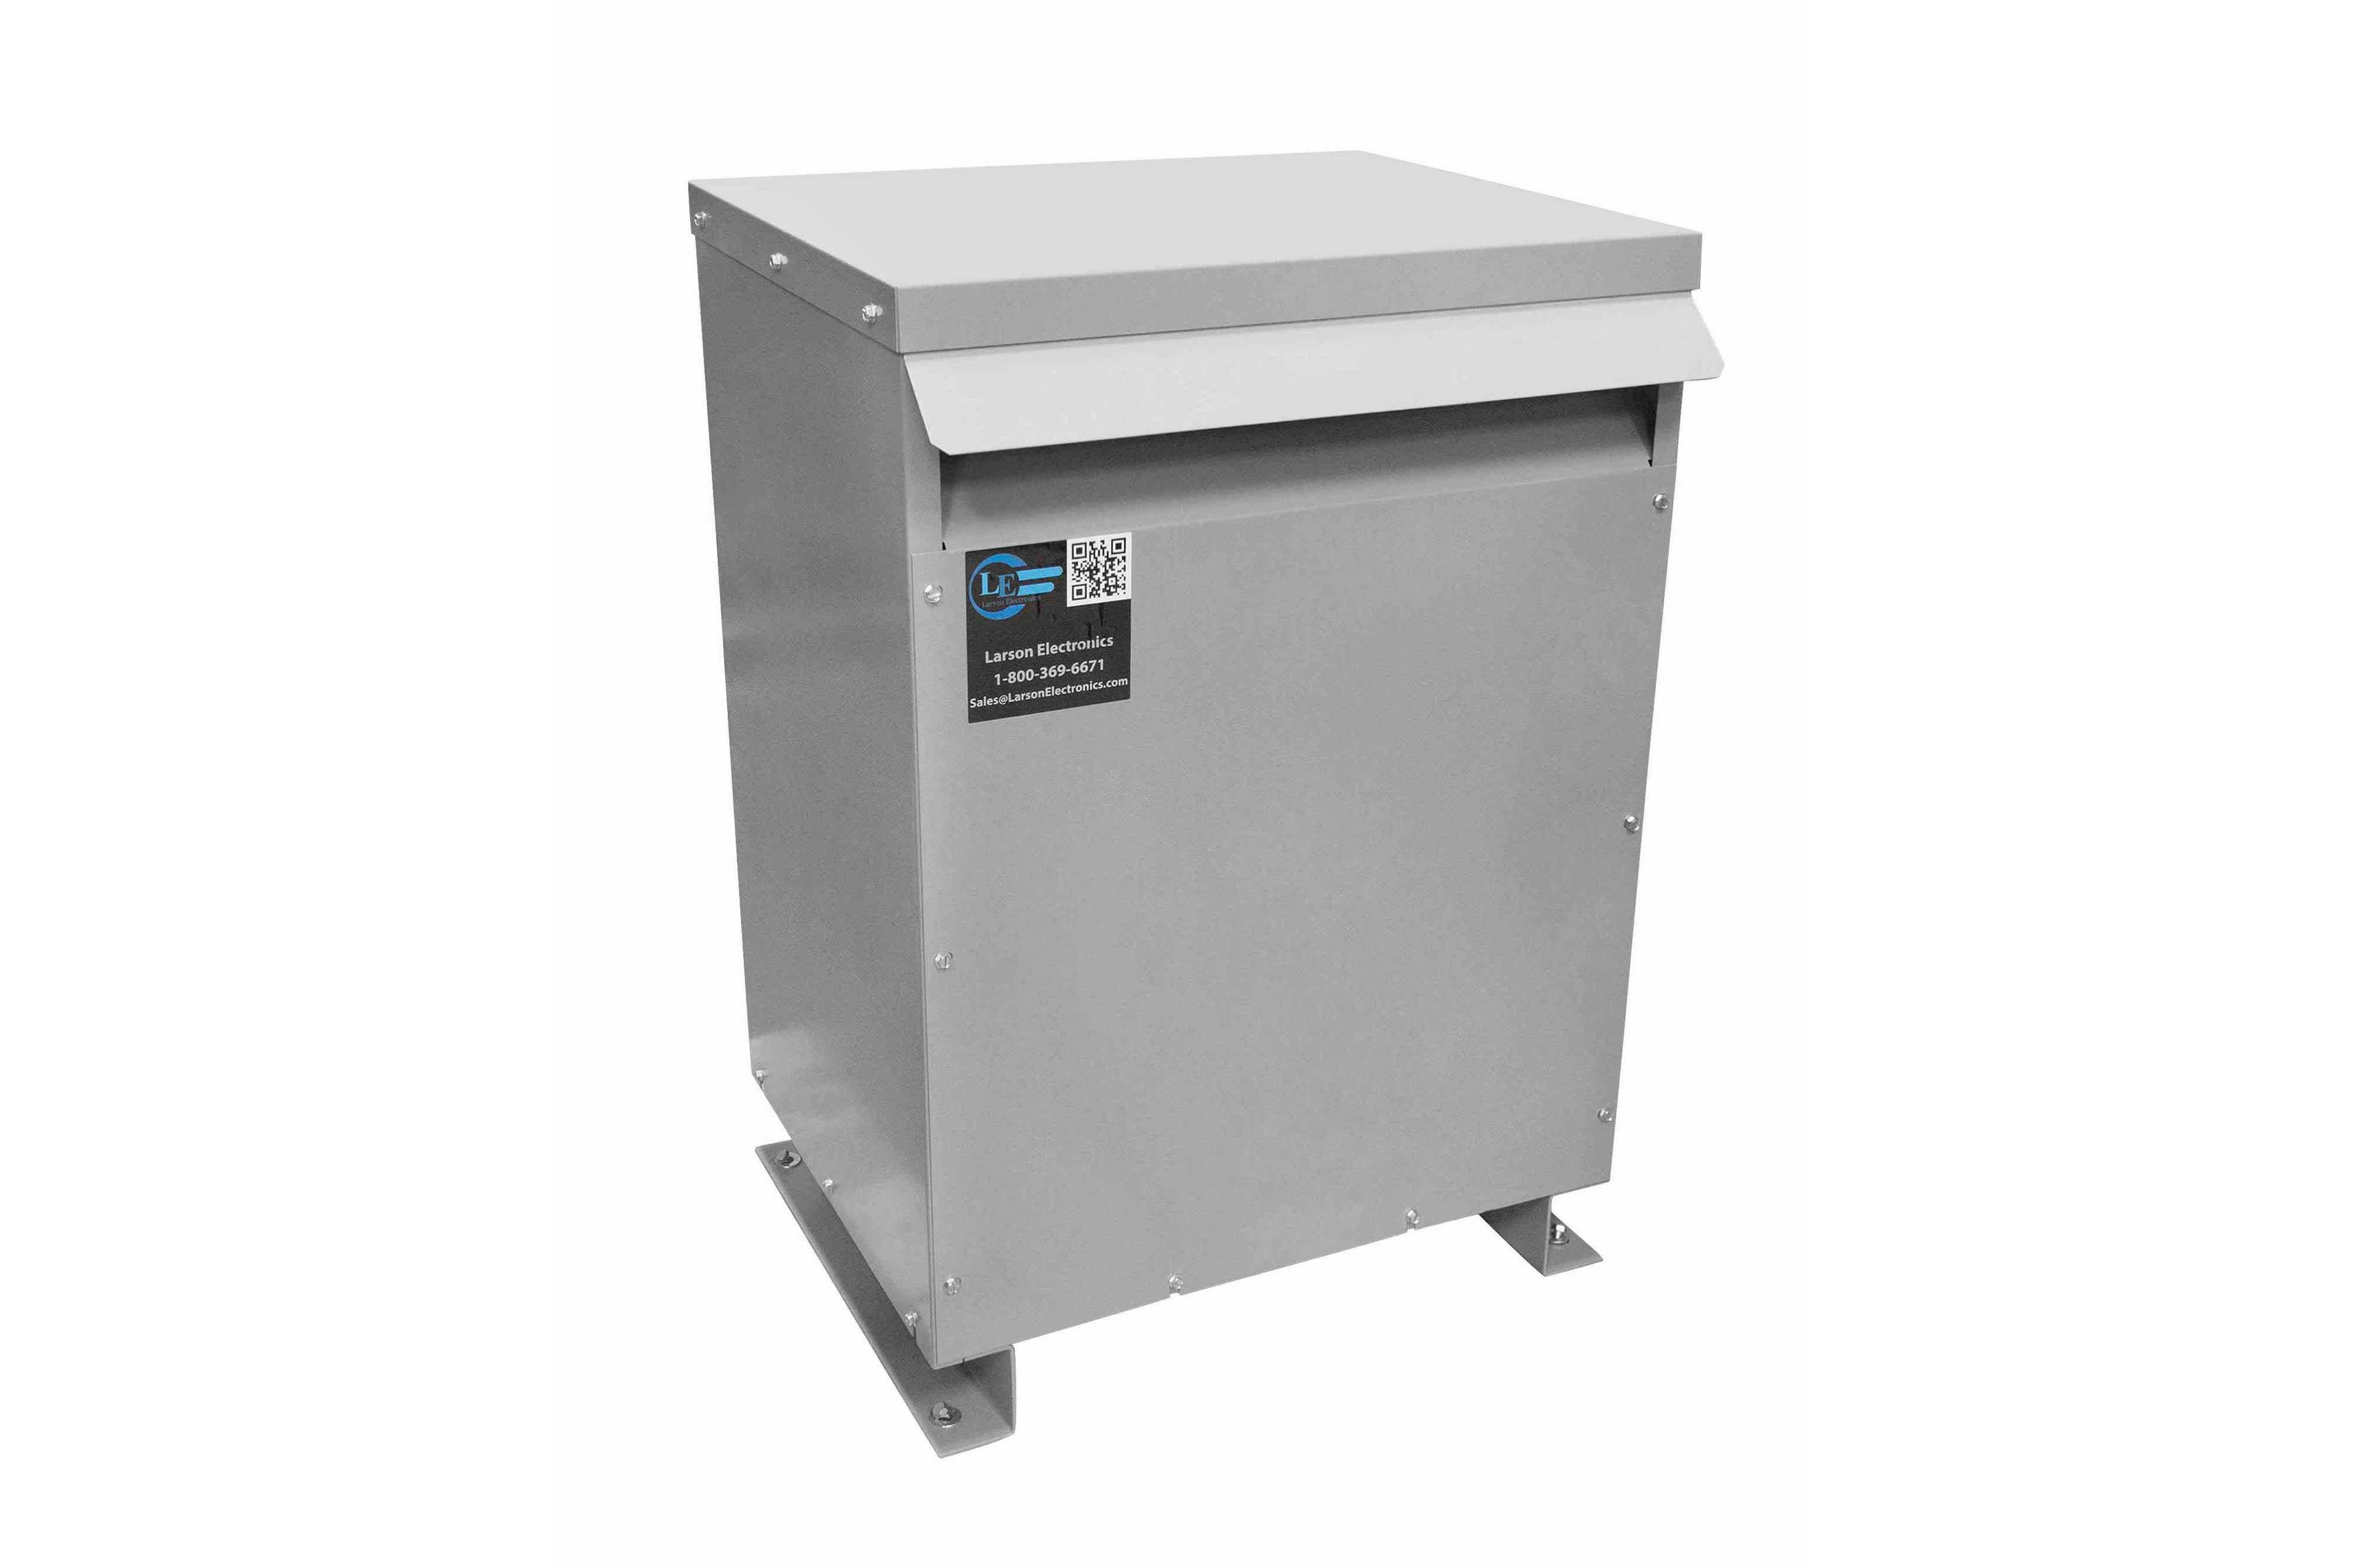 40 kVA 3PH Isolation Transformer, 230V Wye Primary, 208Y/120 Wye-N Secondary, N3R, Ventilated, 60 Hz